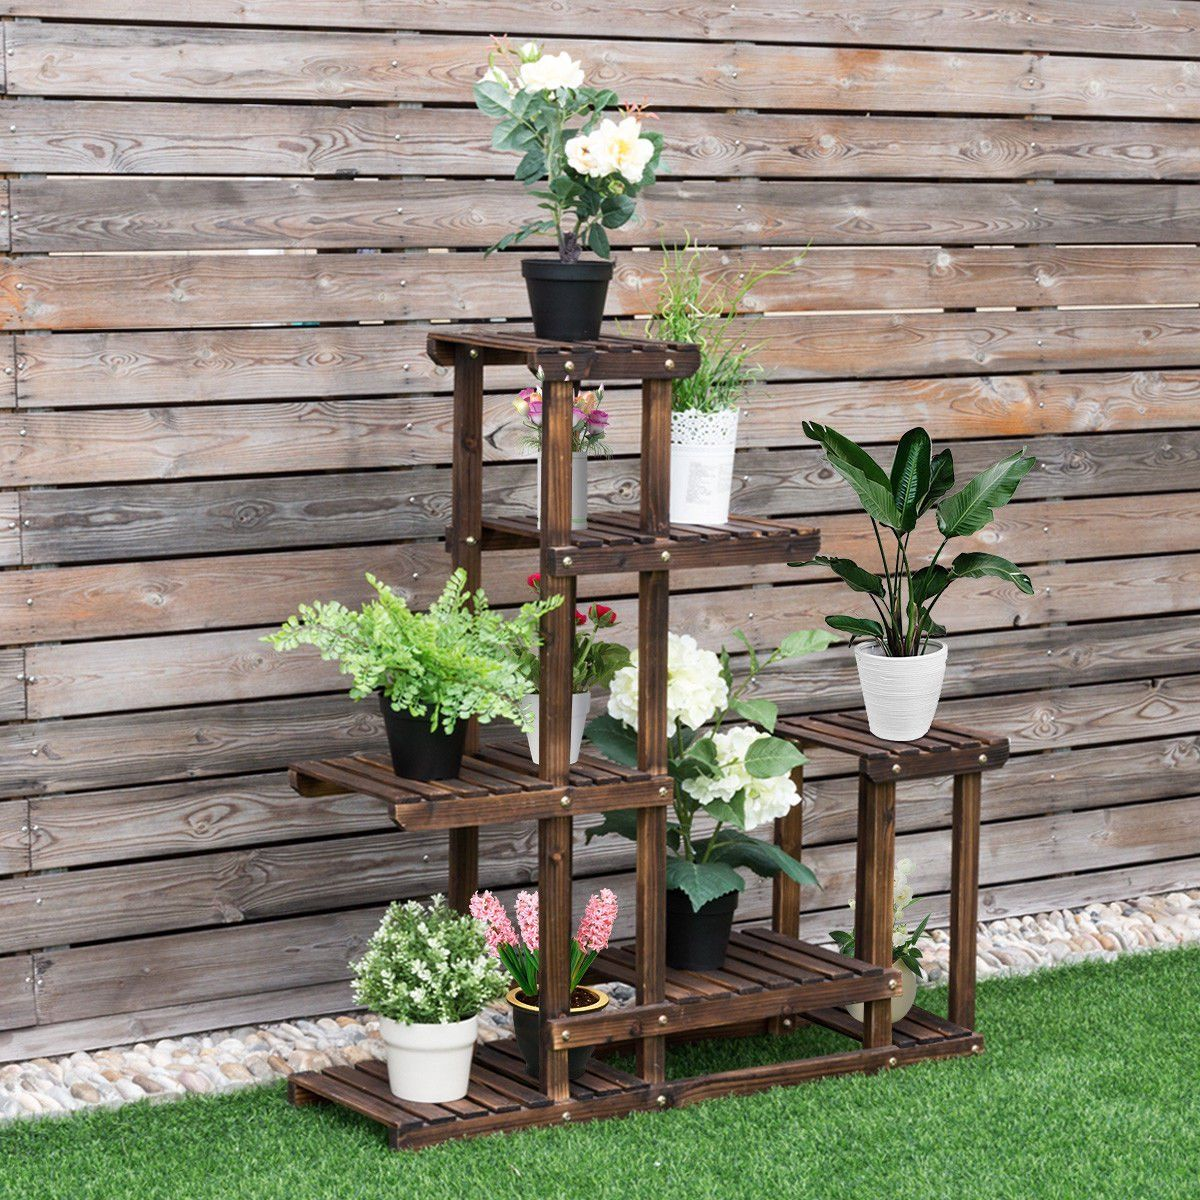 Costway Outdoor Wooden Flower Plant Stand 6 Shelves Walmart Com Wooden Plant Pots Wooden Plant Stands Plant Stand